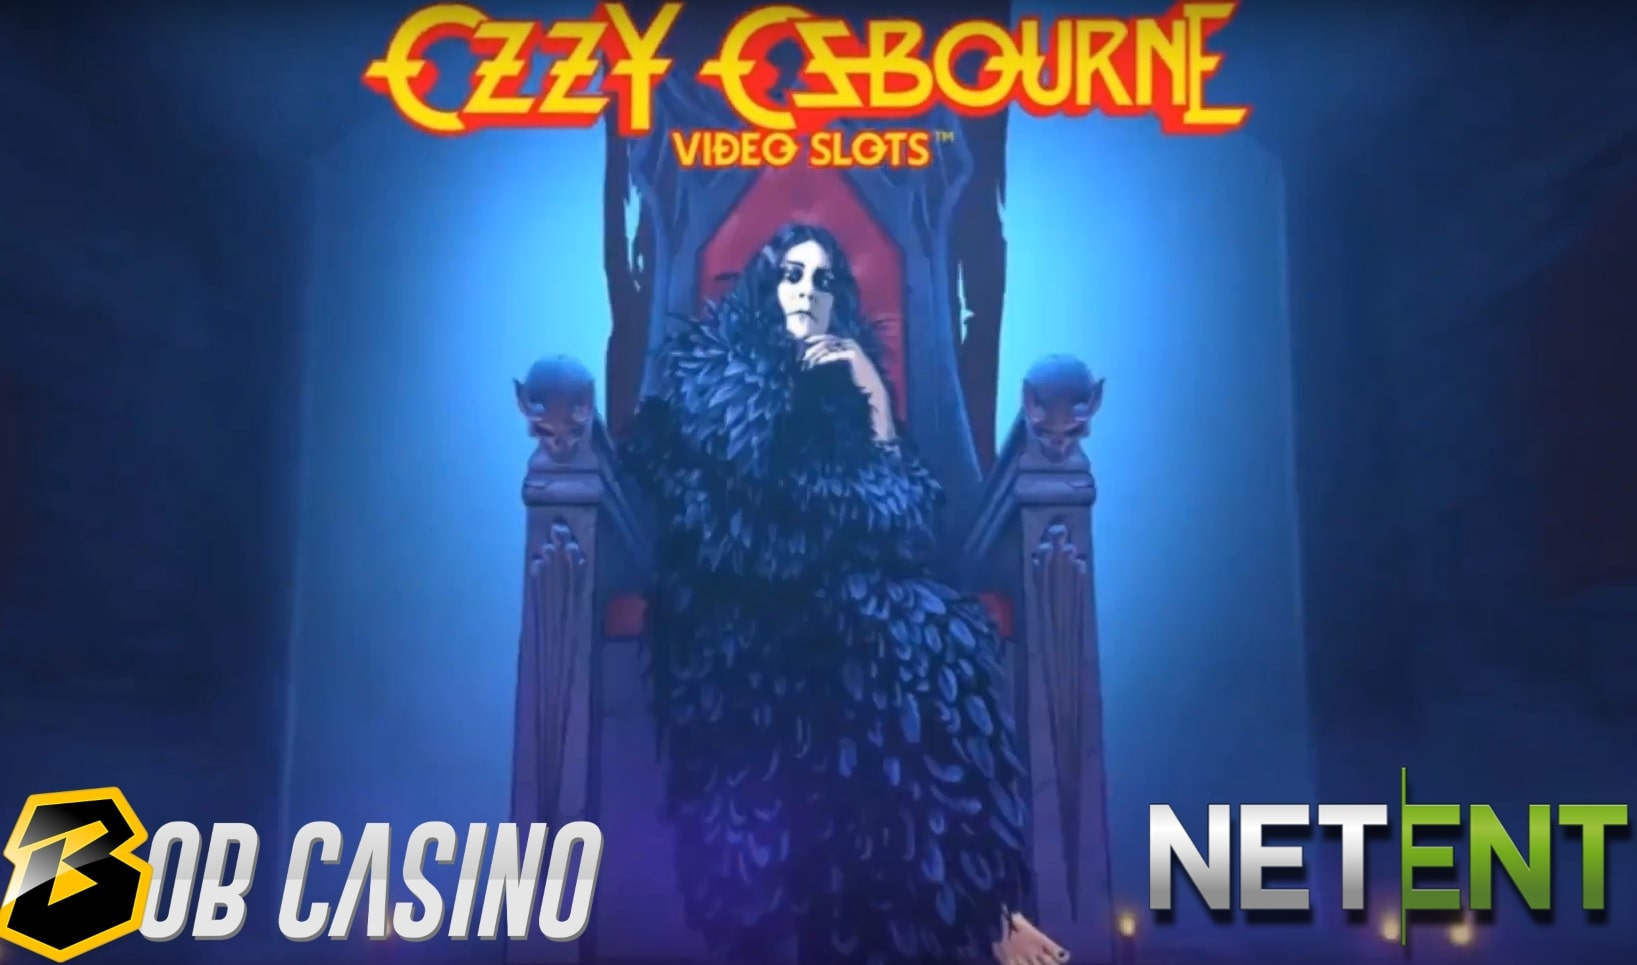 The Prince of Darkness judging our review of Ozzy Osbourne video slots games from NetEnt.